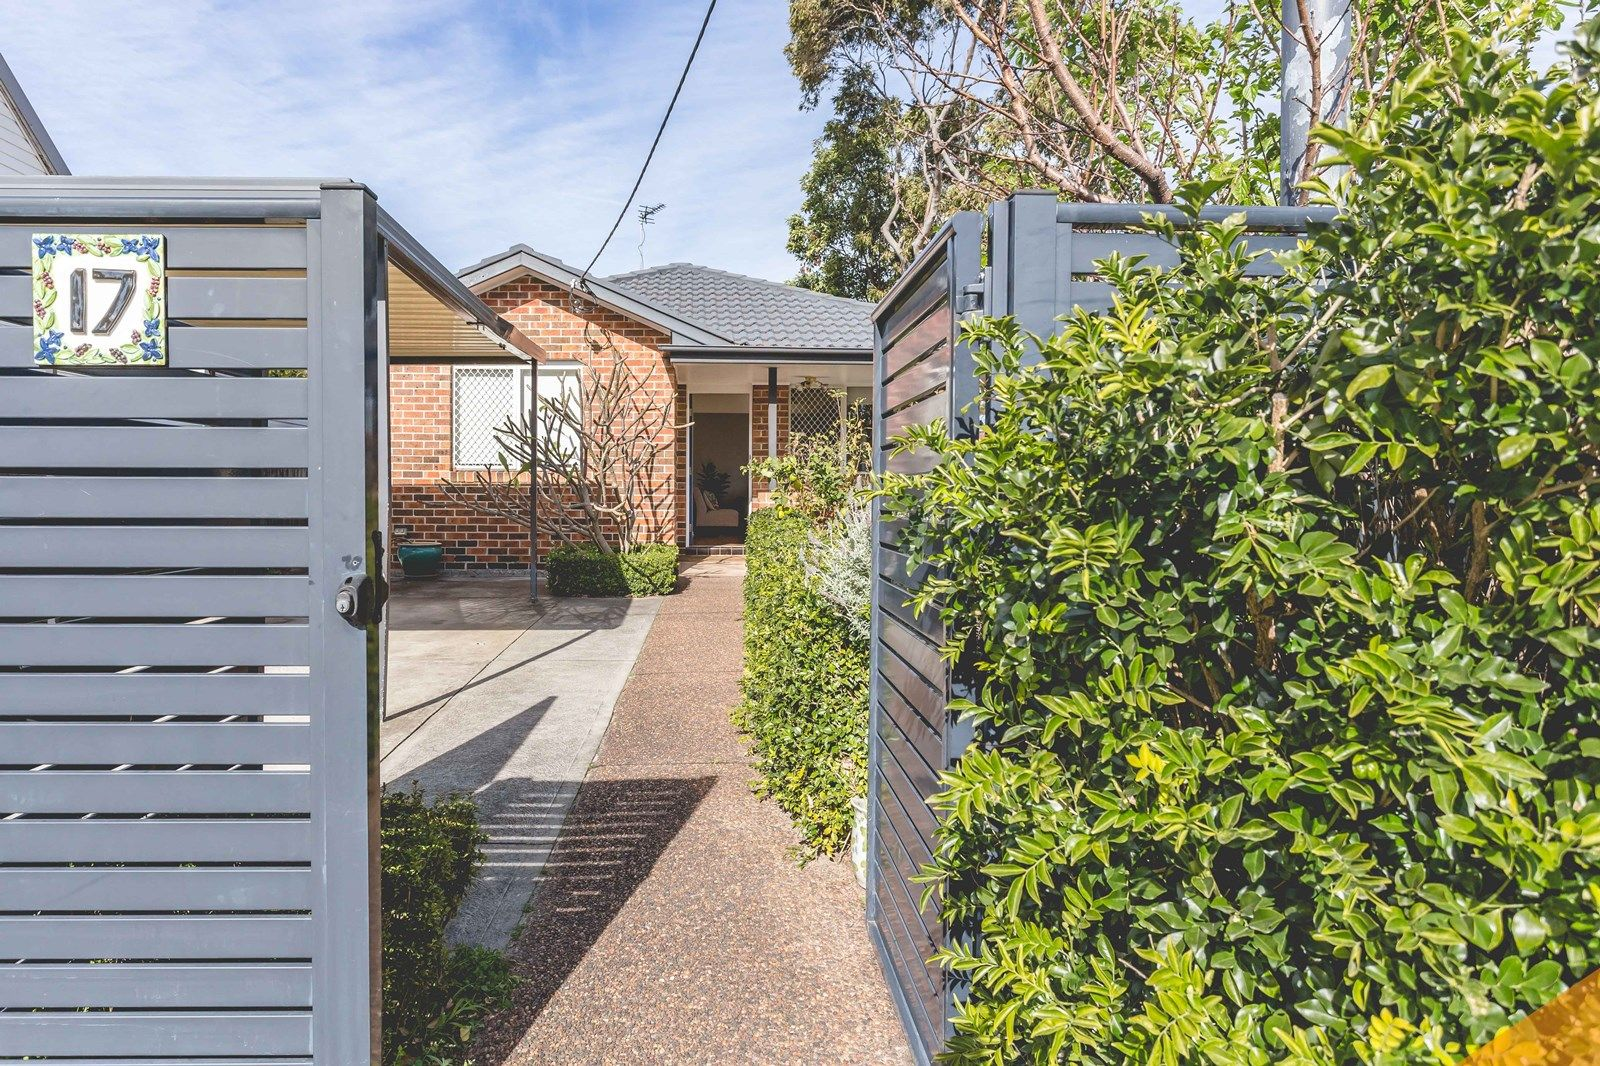 17 Farquhar St, The Junction NSW 2291, Image 1